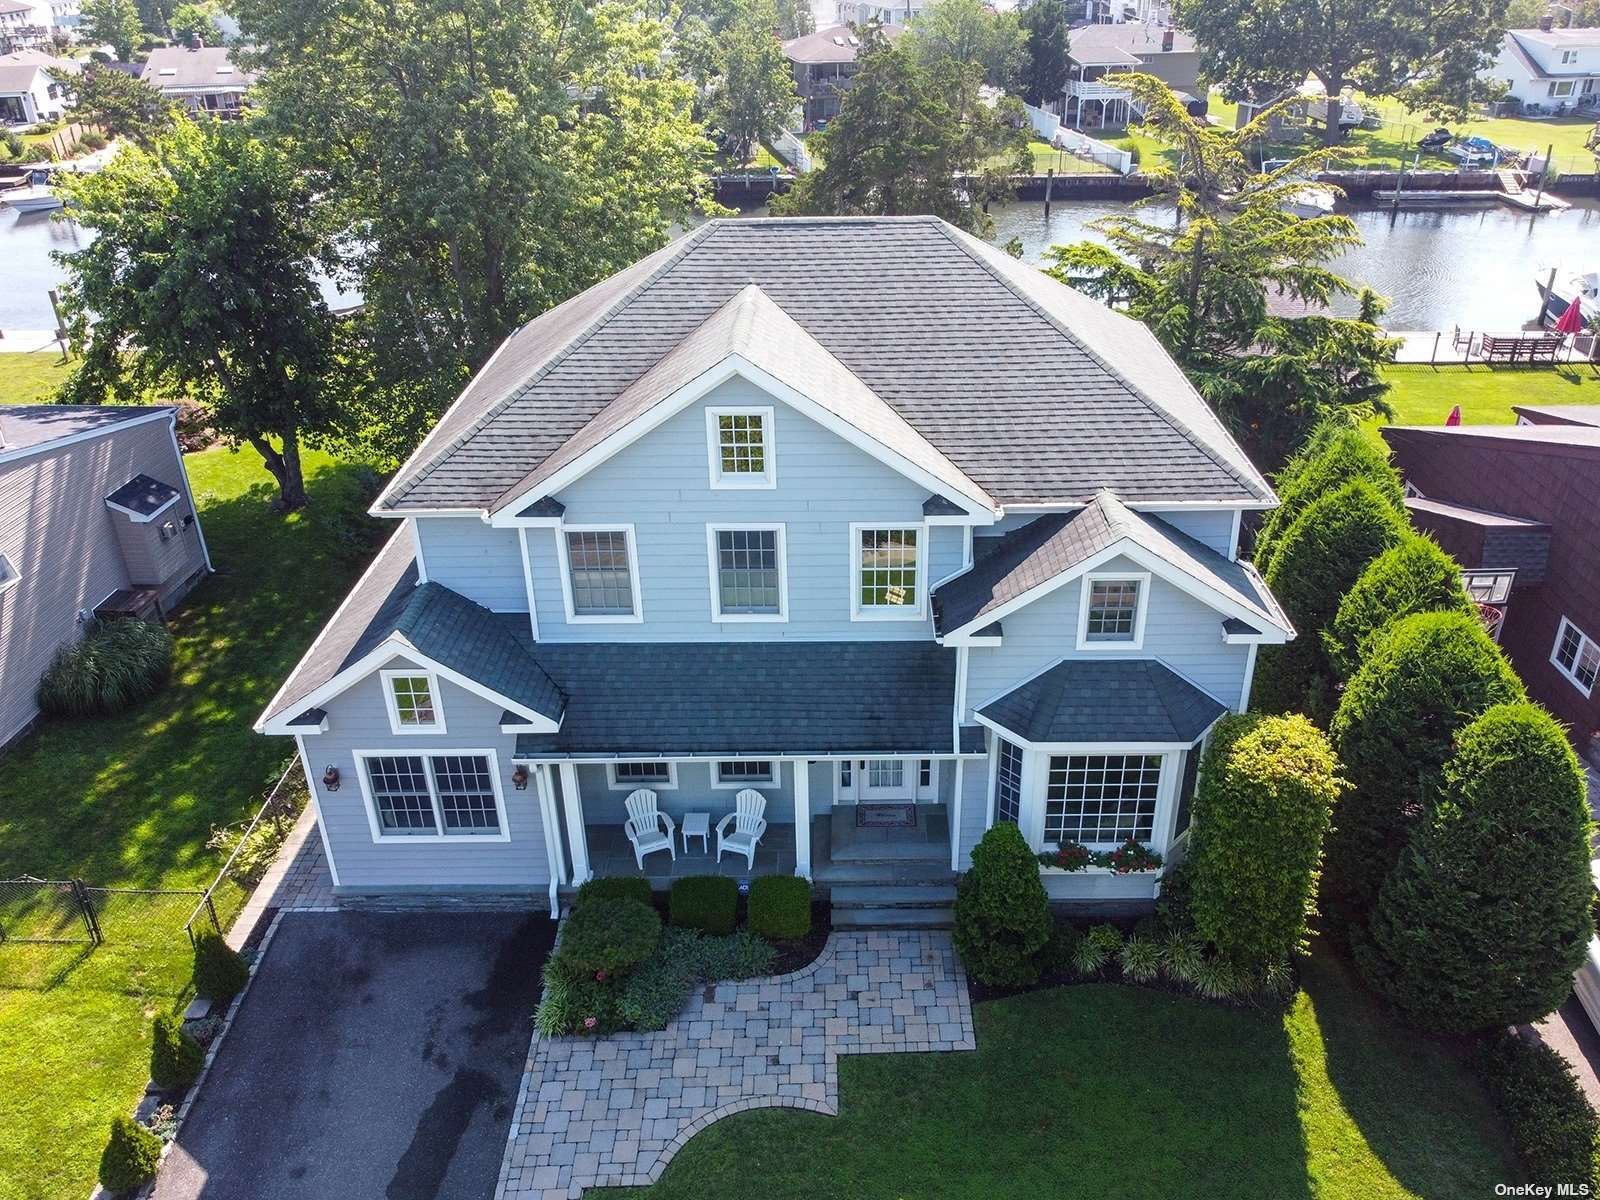 This breathtaking Hampton styled waterfront colonial in Nassau Shores has so much attention to detail it will not disappoint!  The bright soaring entry brings you to French doors which open to the formal living room.  All of the doors are surrounded by beautiful molding and custom trim work and transom windows which continue the bright and airy feel throughout the home. Beautiful hardwood floors grace the entire home.  The formal dining room features custom built ins and the gas fireplace is flanked on either side by custom shelving.  The kitchen is built for entertainment with a dual oven, separate warming drawer, beautiful silestone countertops and sliders that open to the backyard.  While of course the master has a gorgeous ensuite as well as its own walk in closet it also has its own private balcony where you can take in beautiful waterfront views.  With bluestone accents on the exterior of the home and 60 feet of bulkhead and a pier this charming colonial won't last!